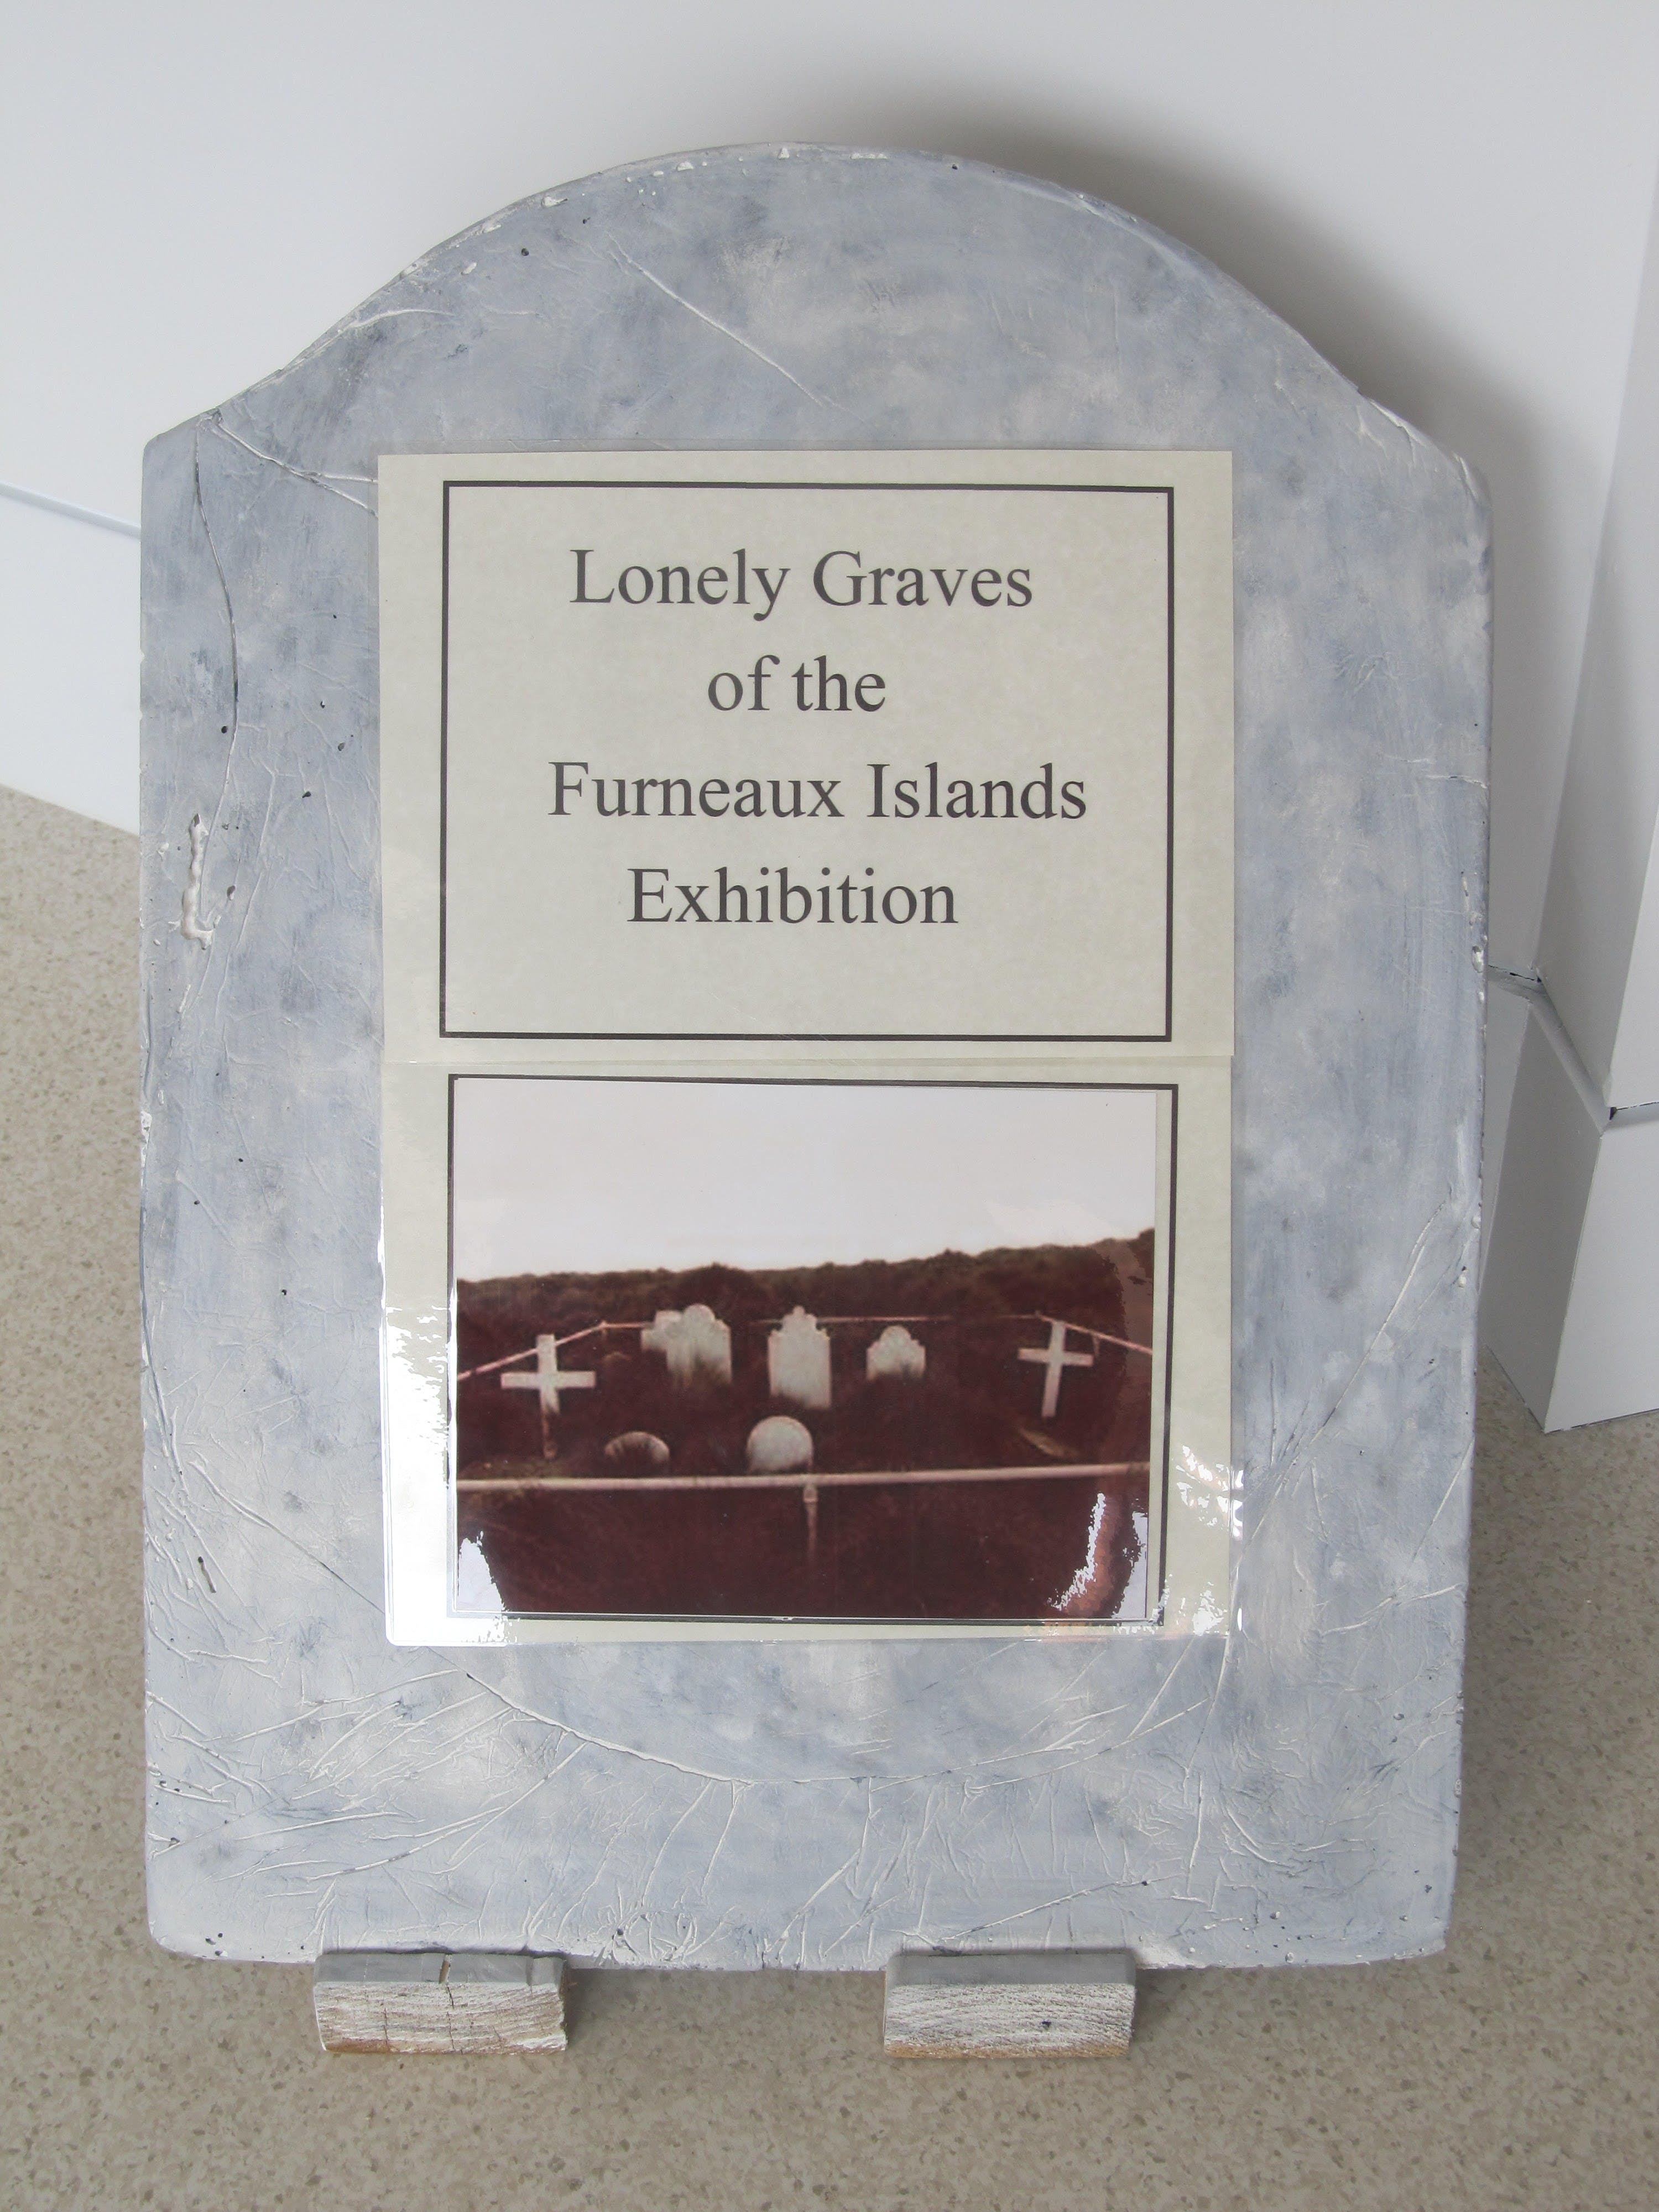 Lonely Graves of the Furneaux Islands Exhibition - Carnarvon Accommodation